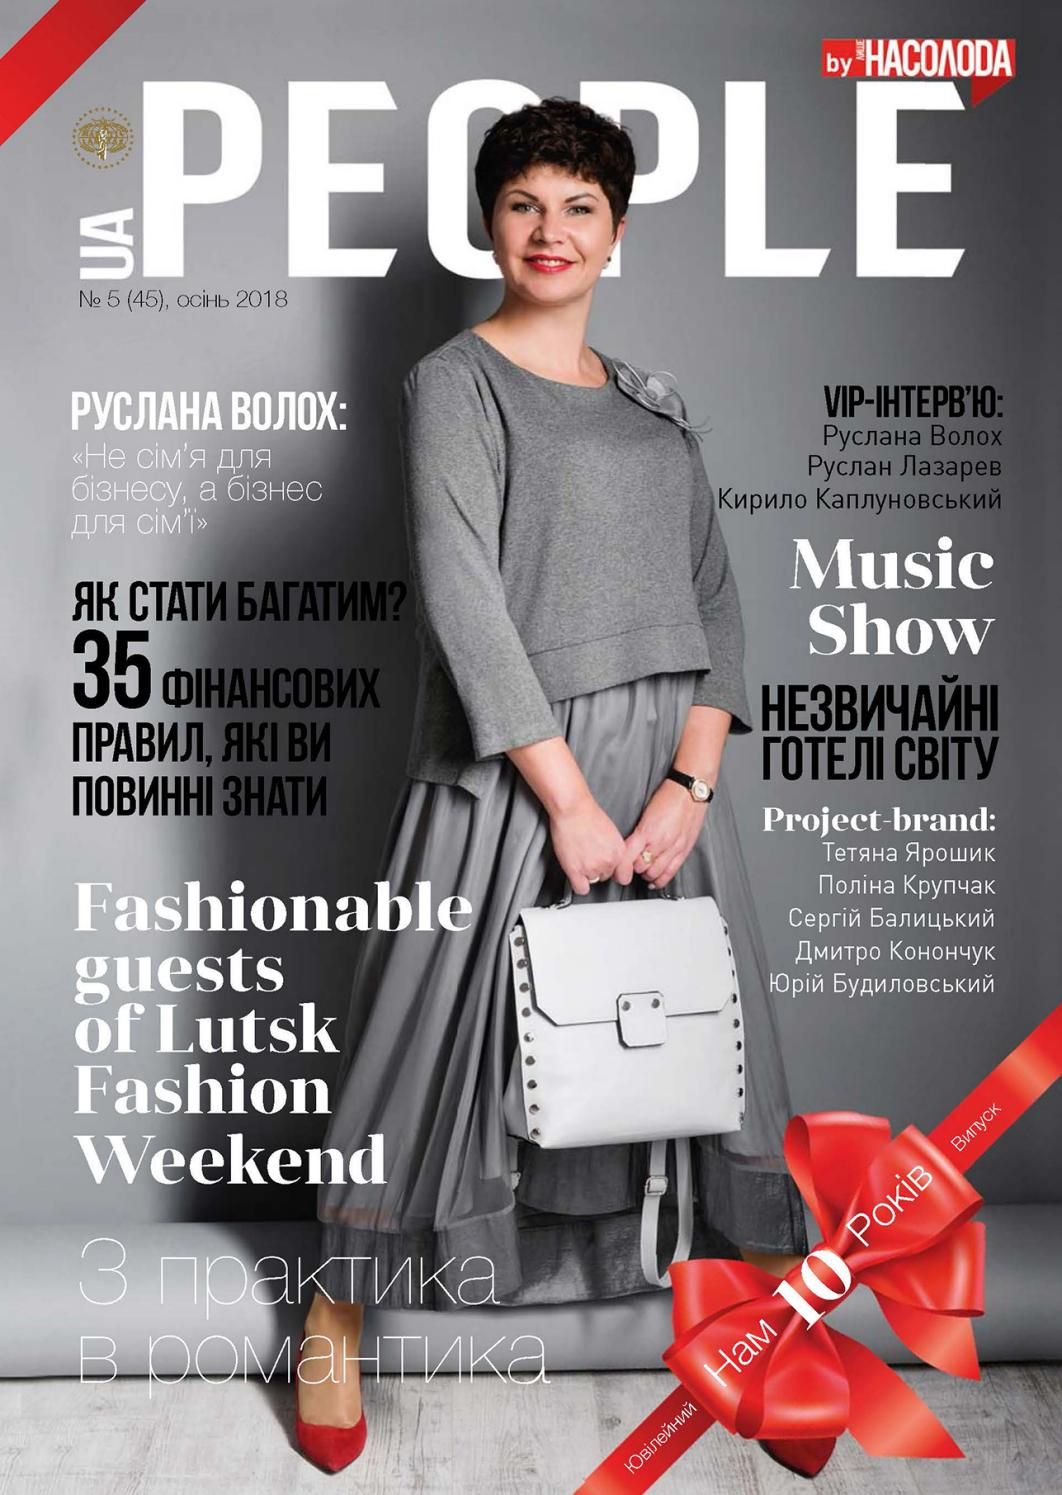 People UA   (5)45 осінь 2018 by Izuminka1 - issuu cf34712effe32